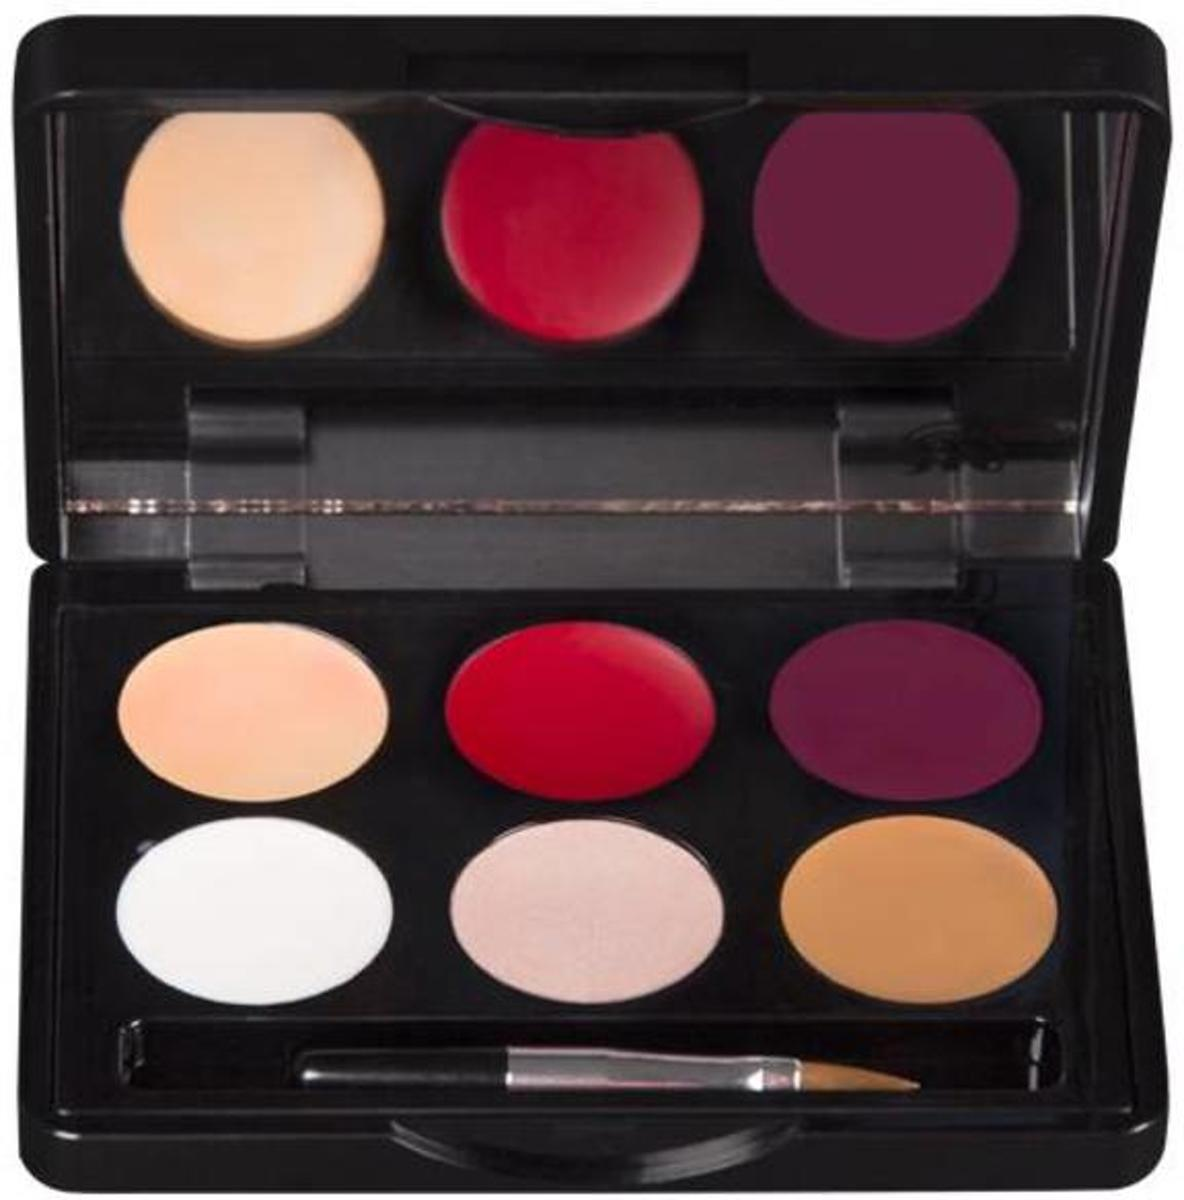 Make-up Studio Lip Shaping Palette Lipstick 1 st.